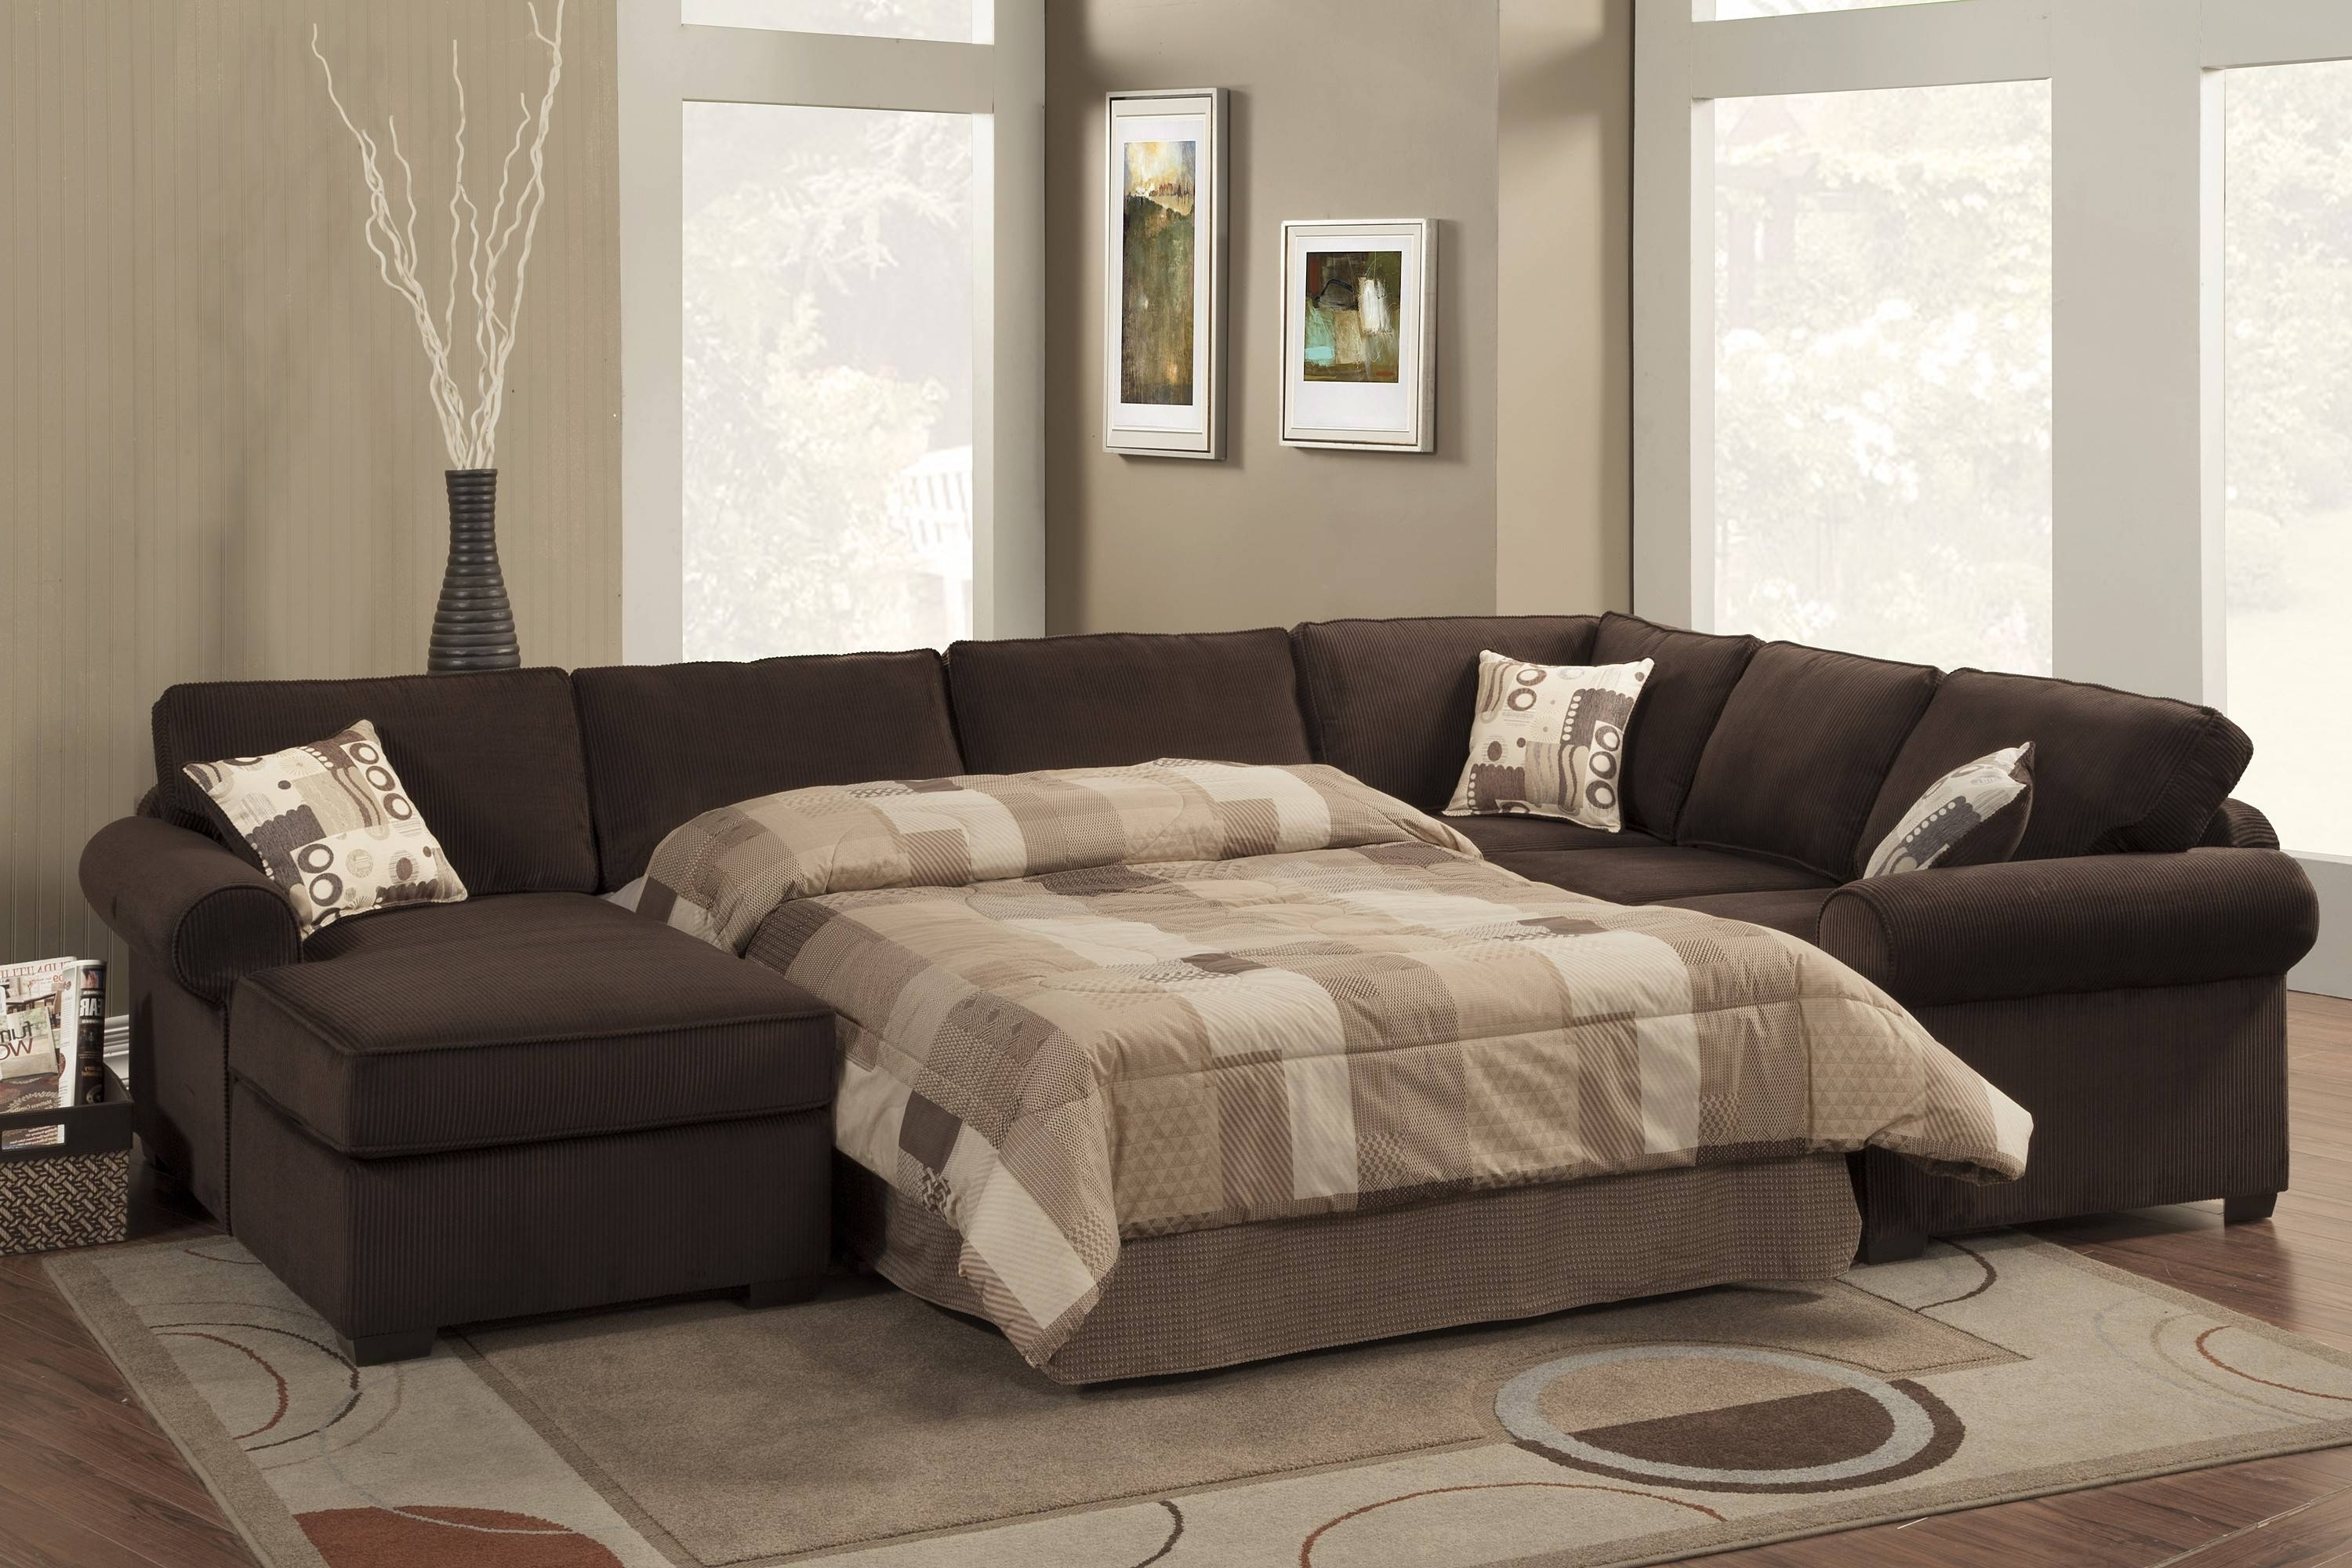 Preferred Cheap Sectional Sofas With Wide Sectional Couch With New Sectional Regarding Sectional Sofas Under (View 13 of 20)